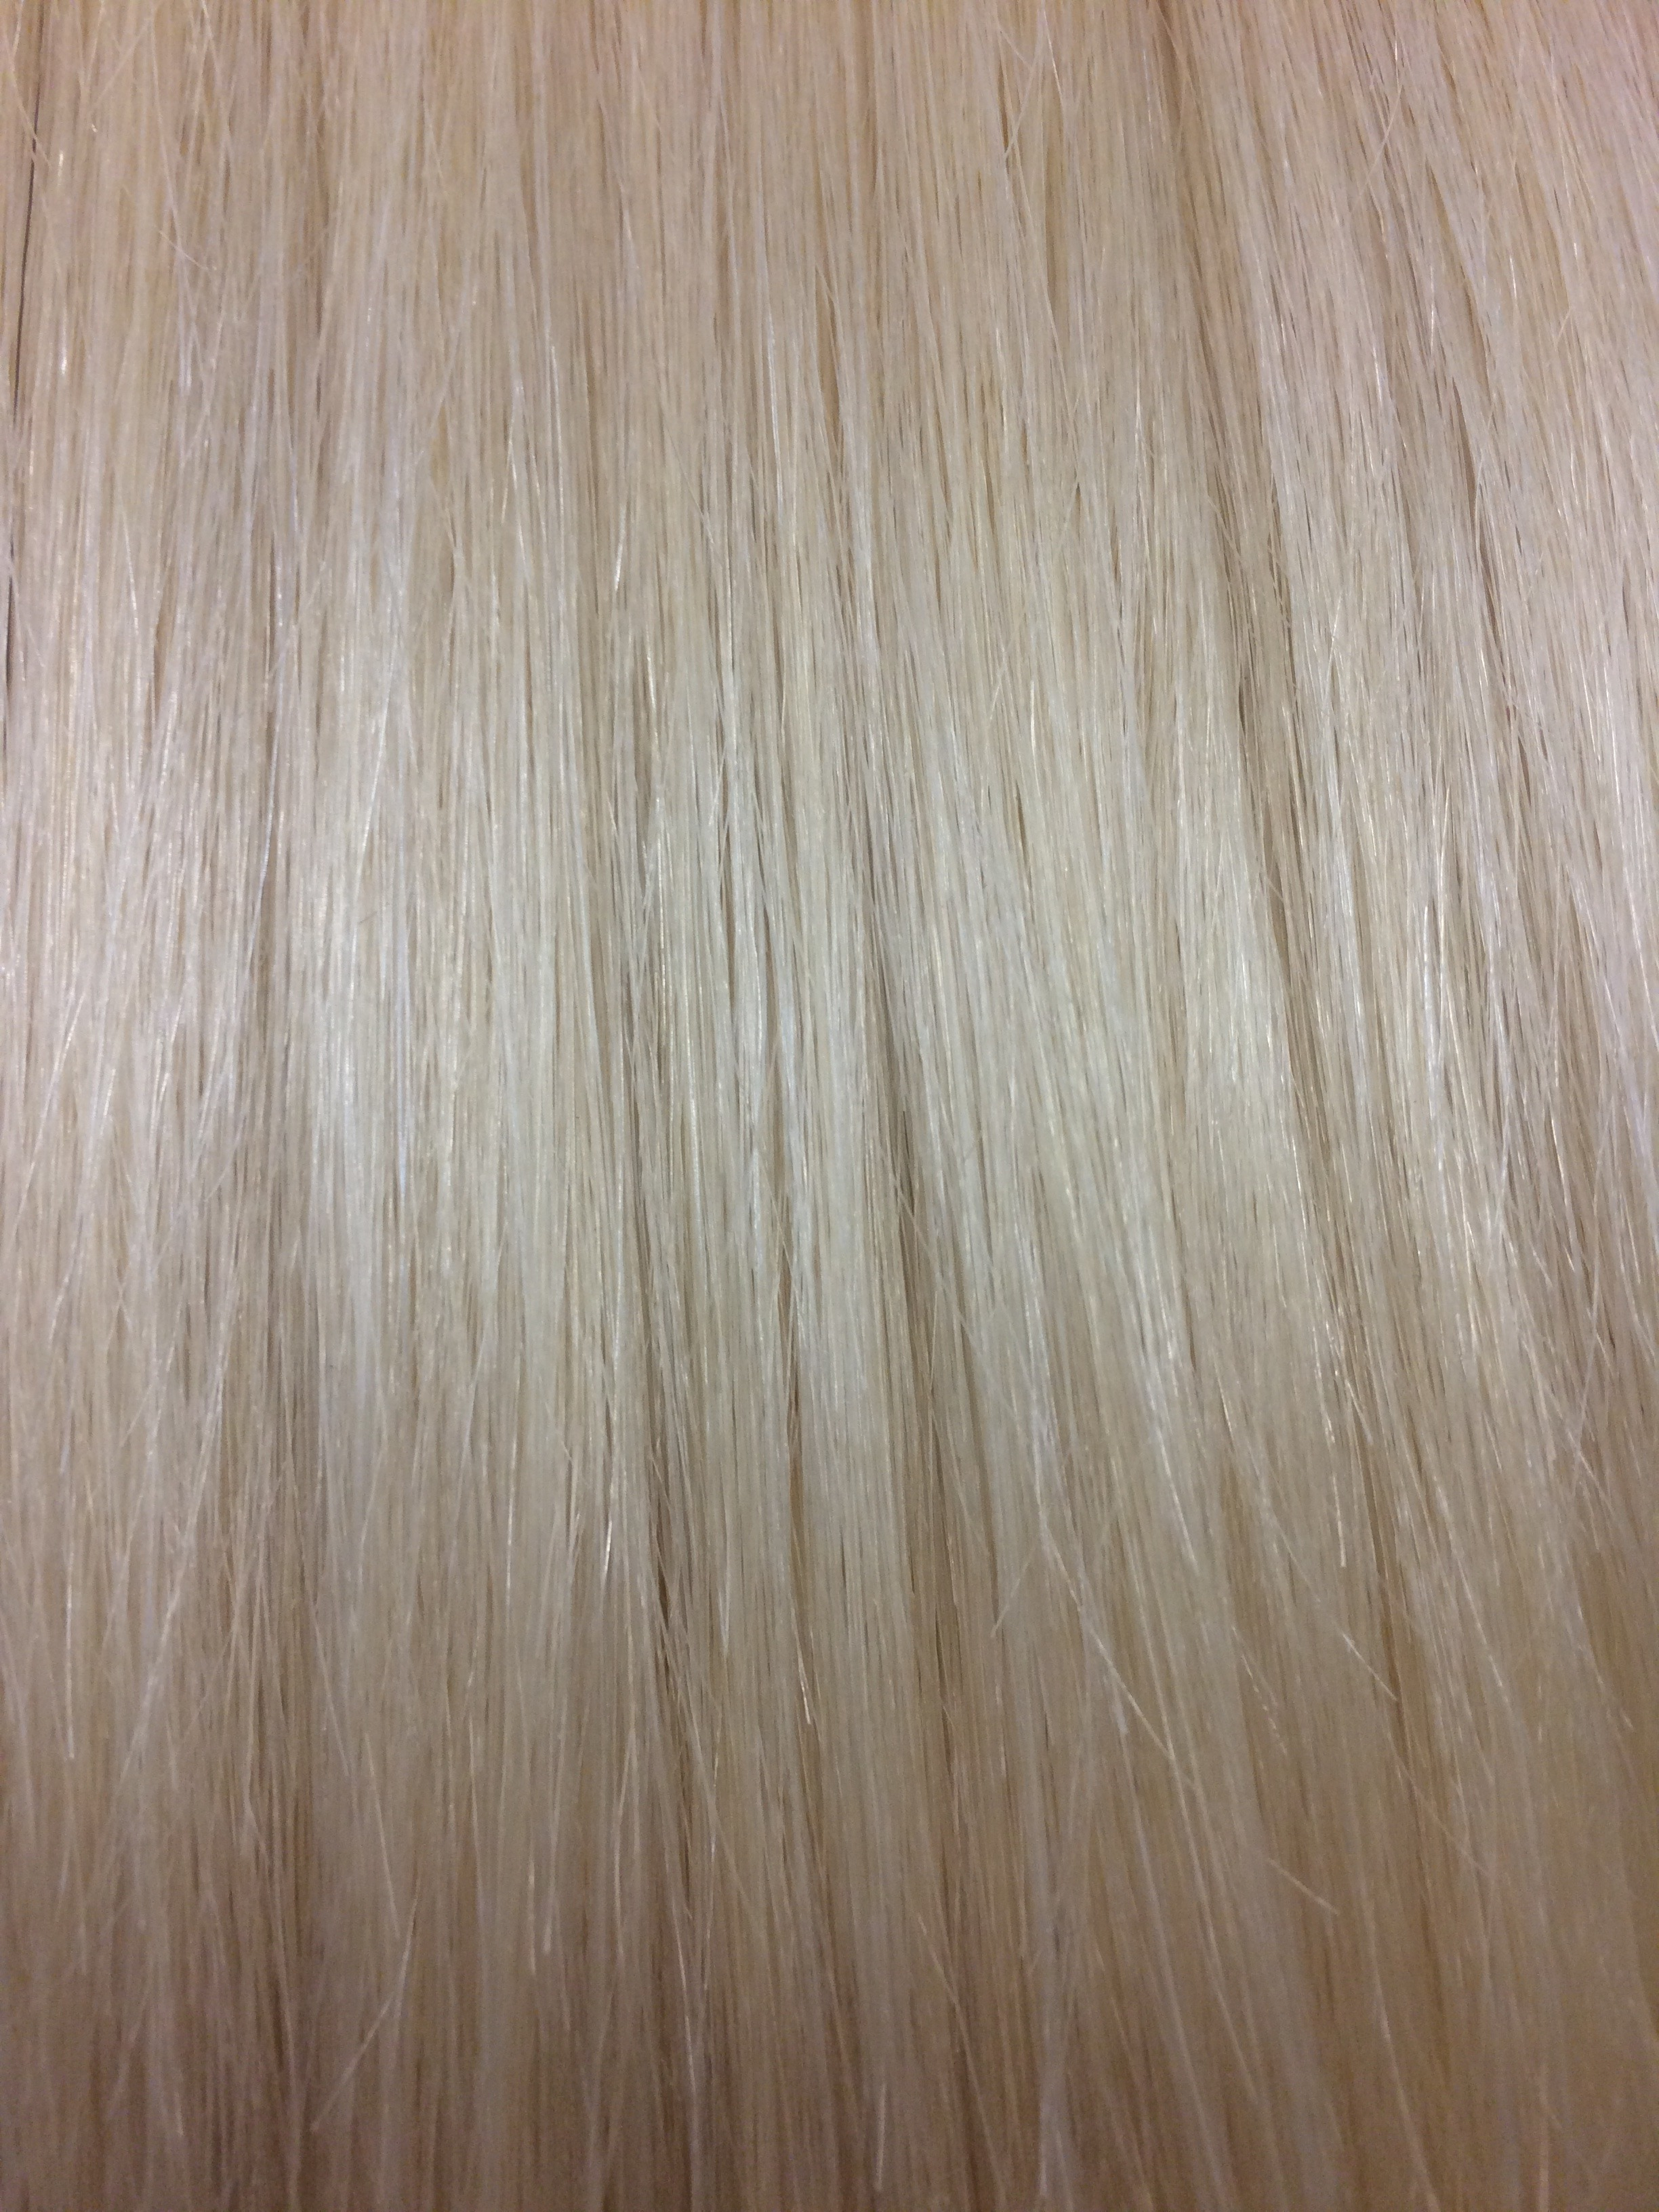 Goddess Remi Silky Hair Extensions 14 18 Eboni And Ivory